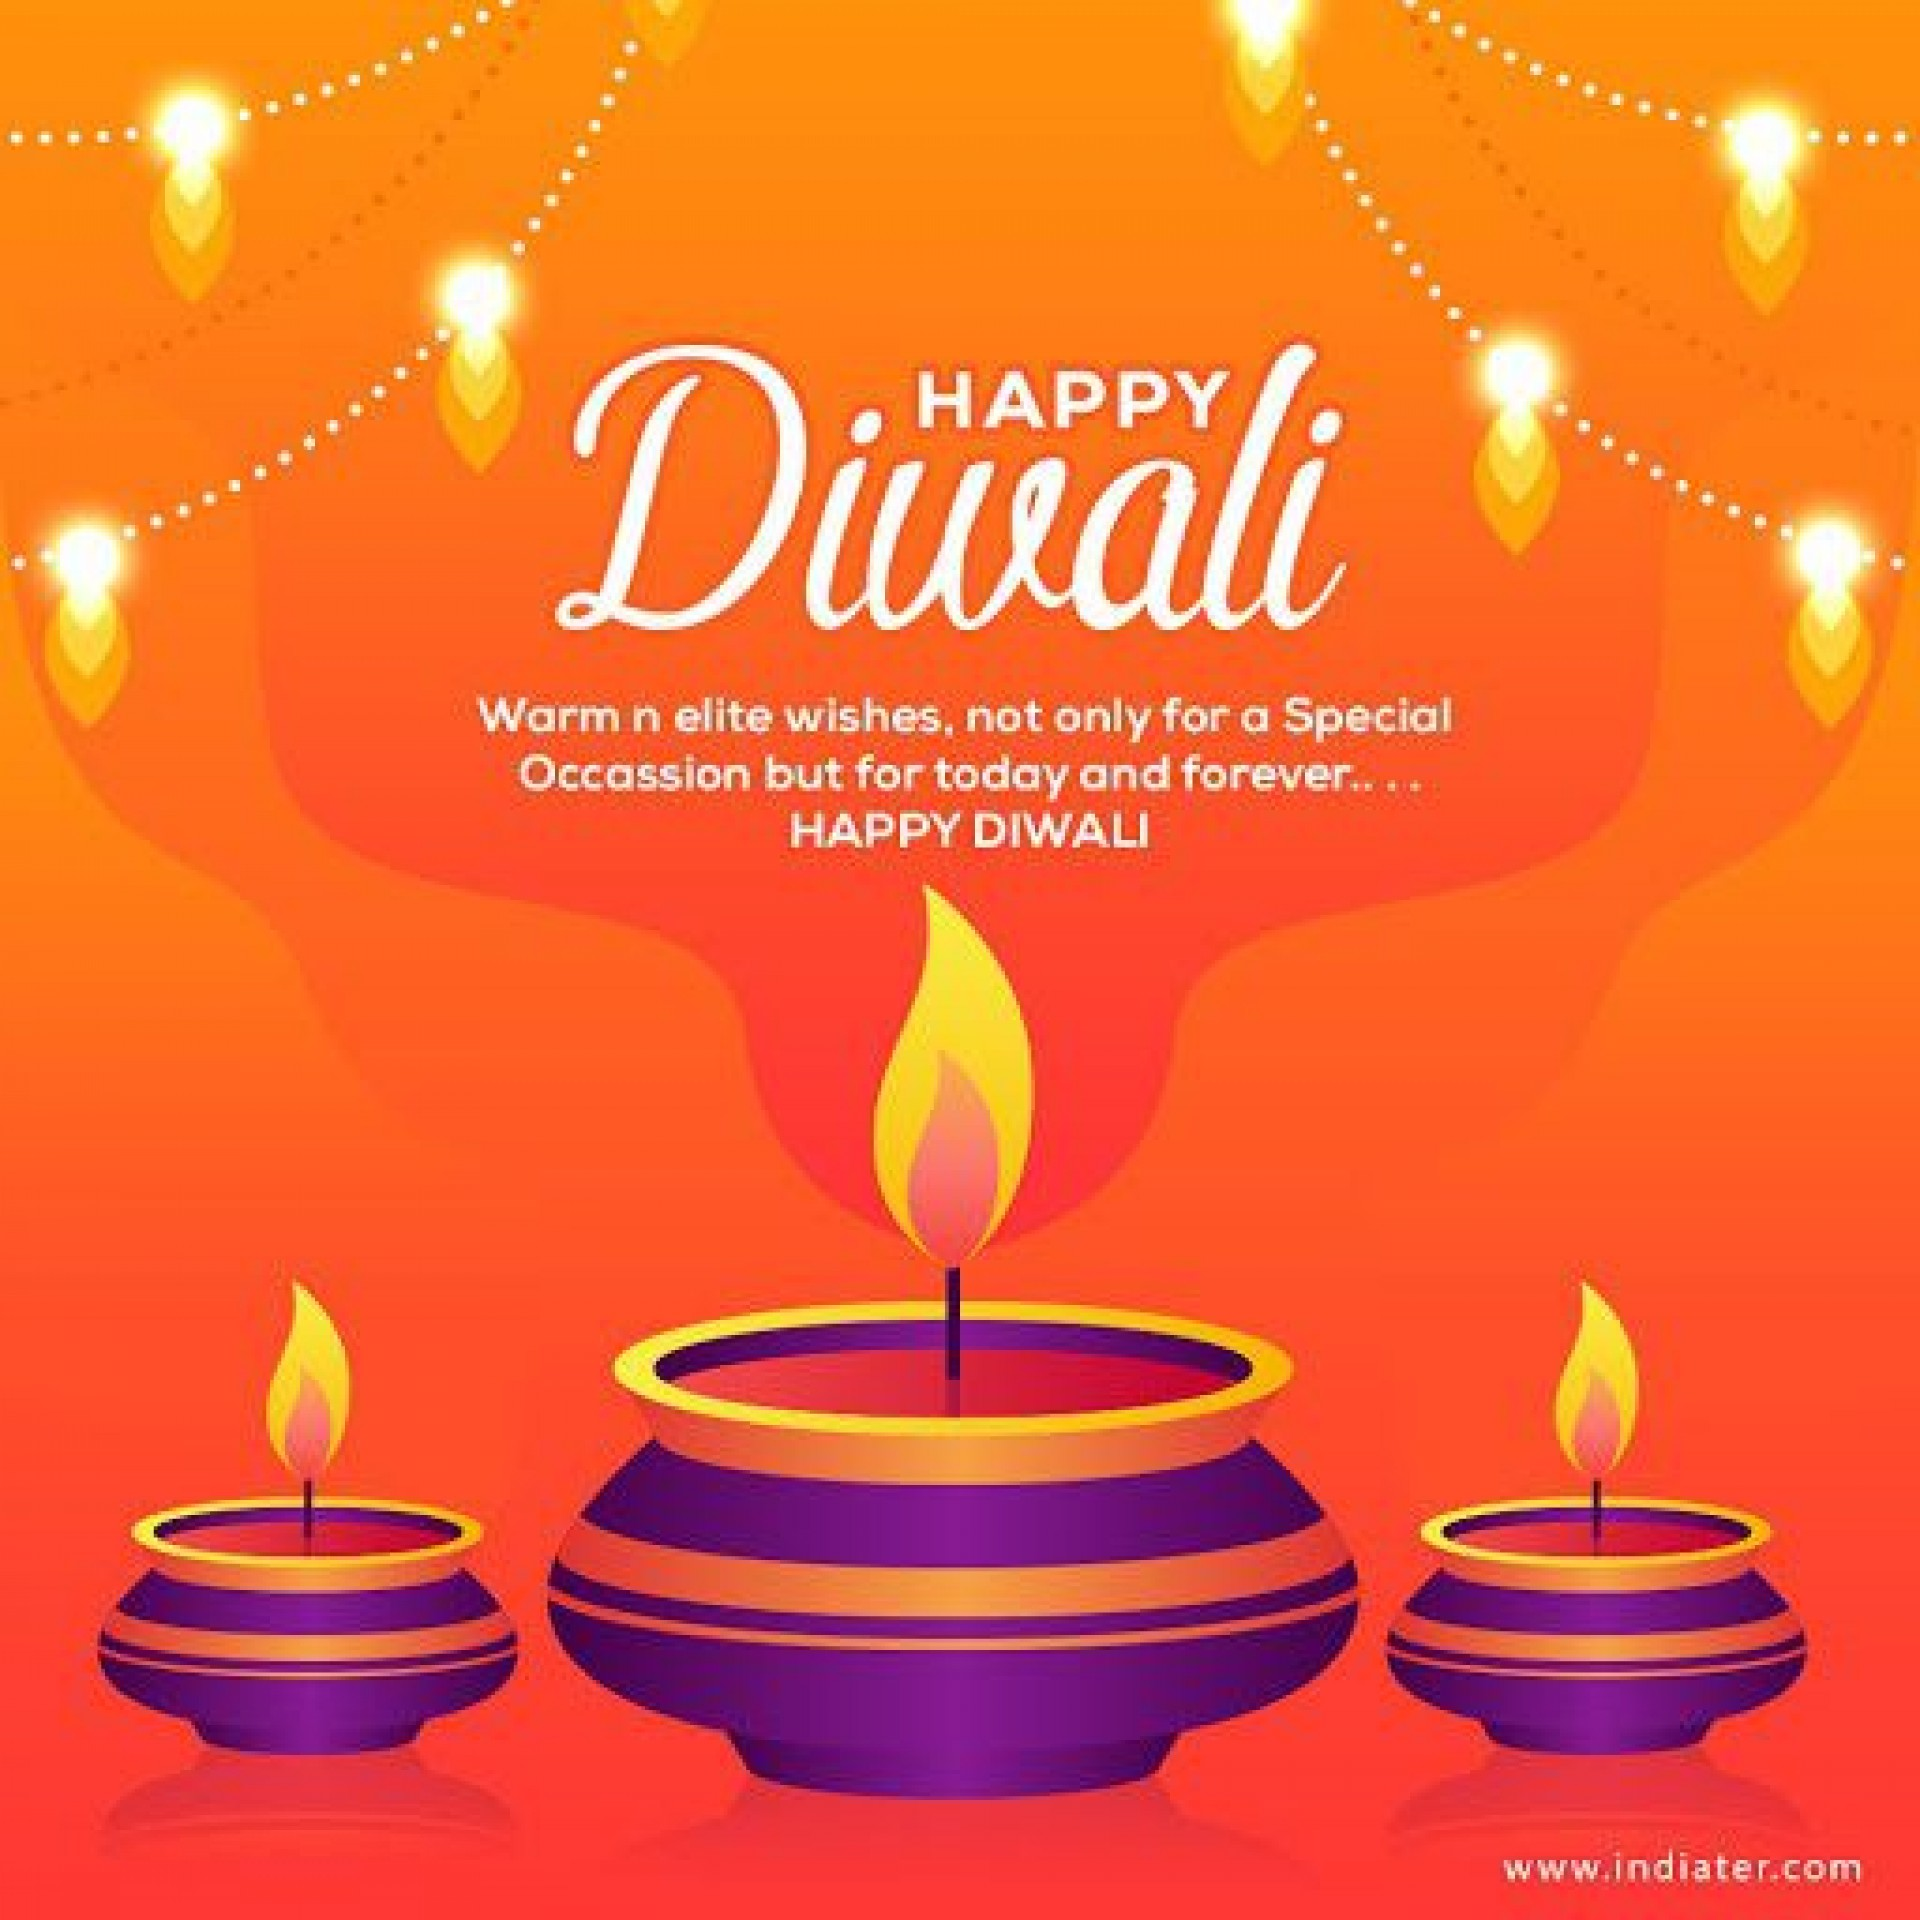 009 Imposing Diwali Party Invite Template Free Image 1920